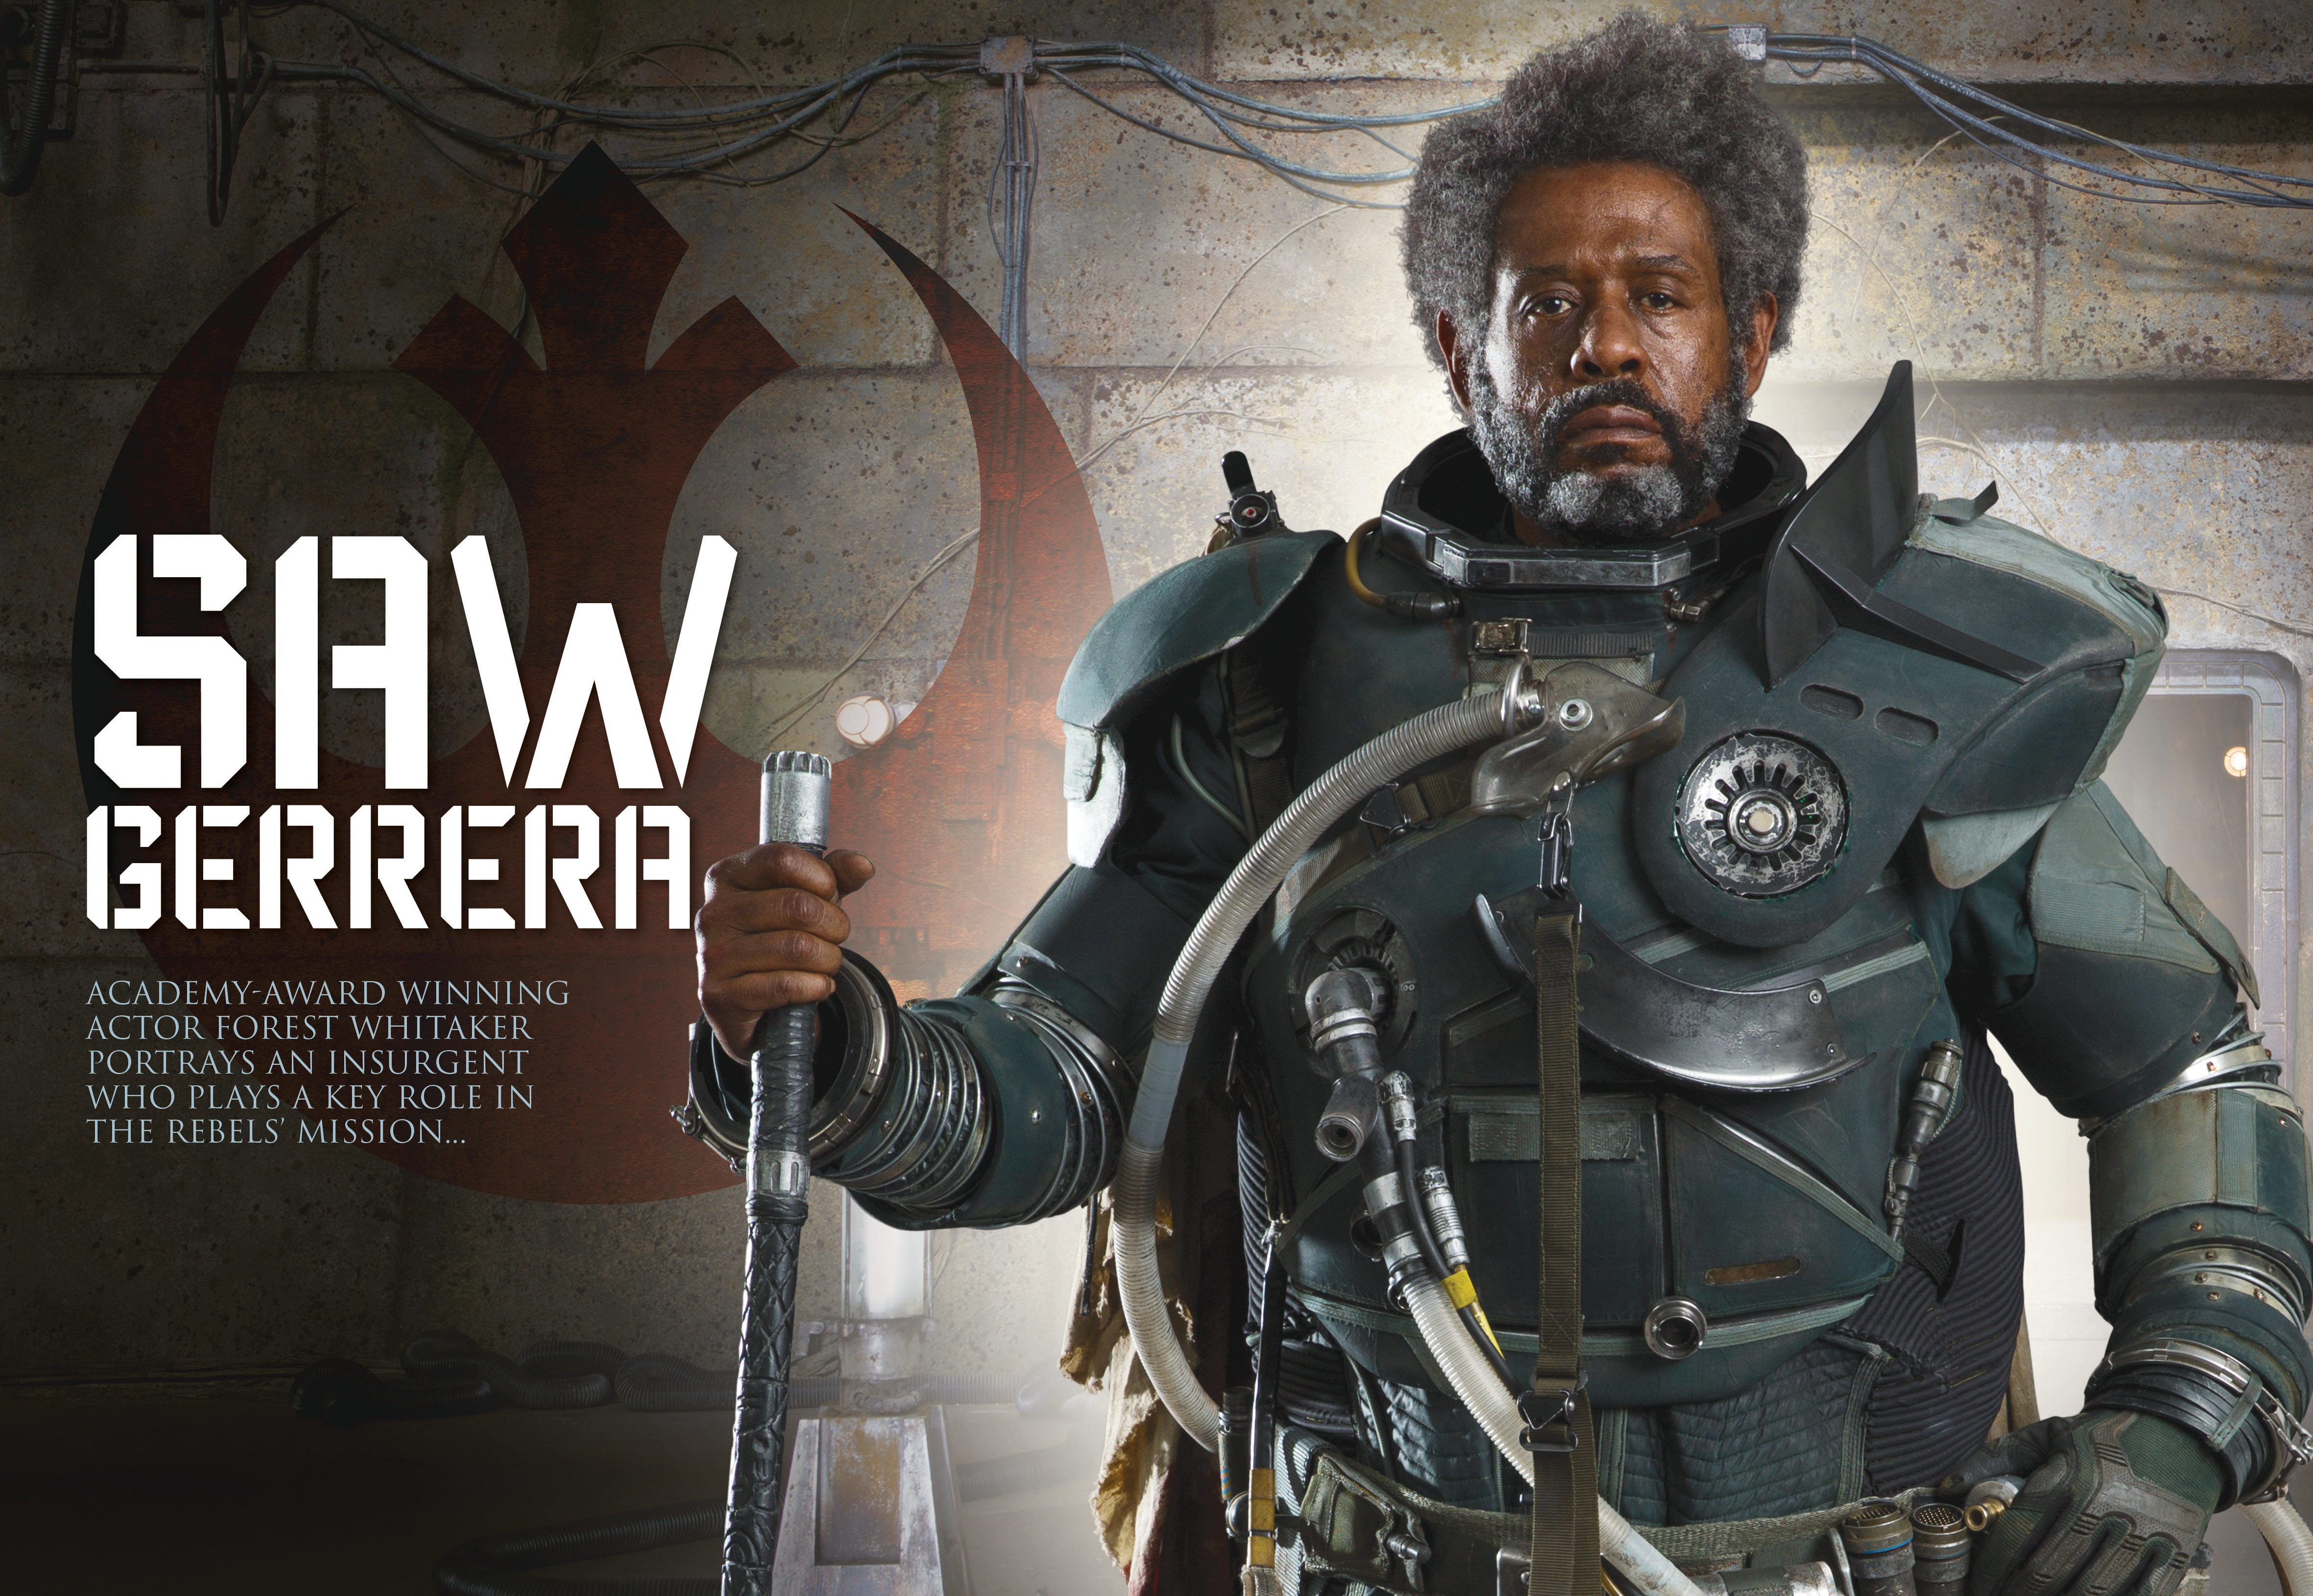 Section from Star Wars Insider #170 featuring Saw Gerrera